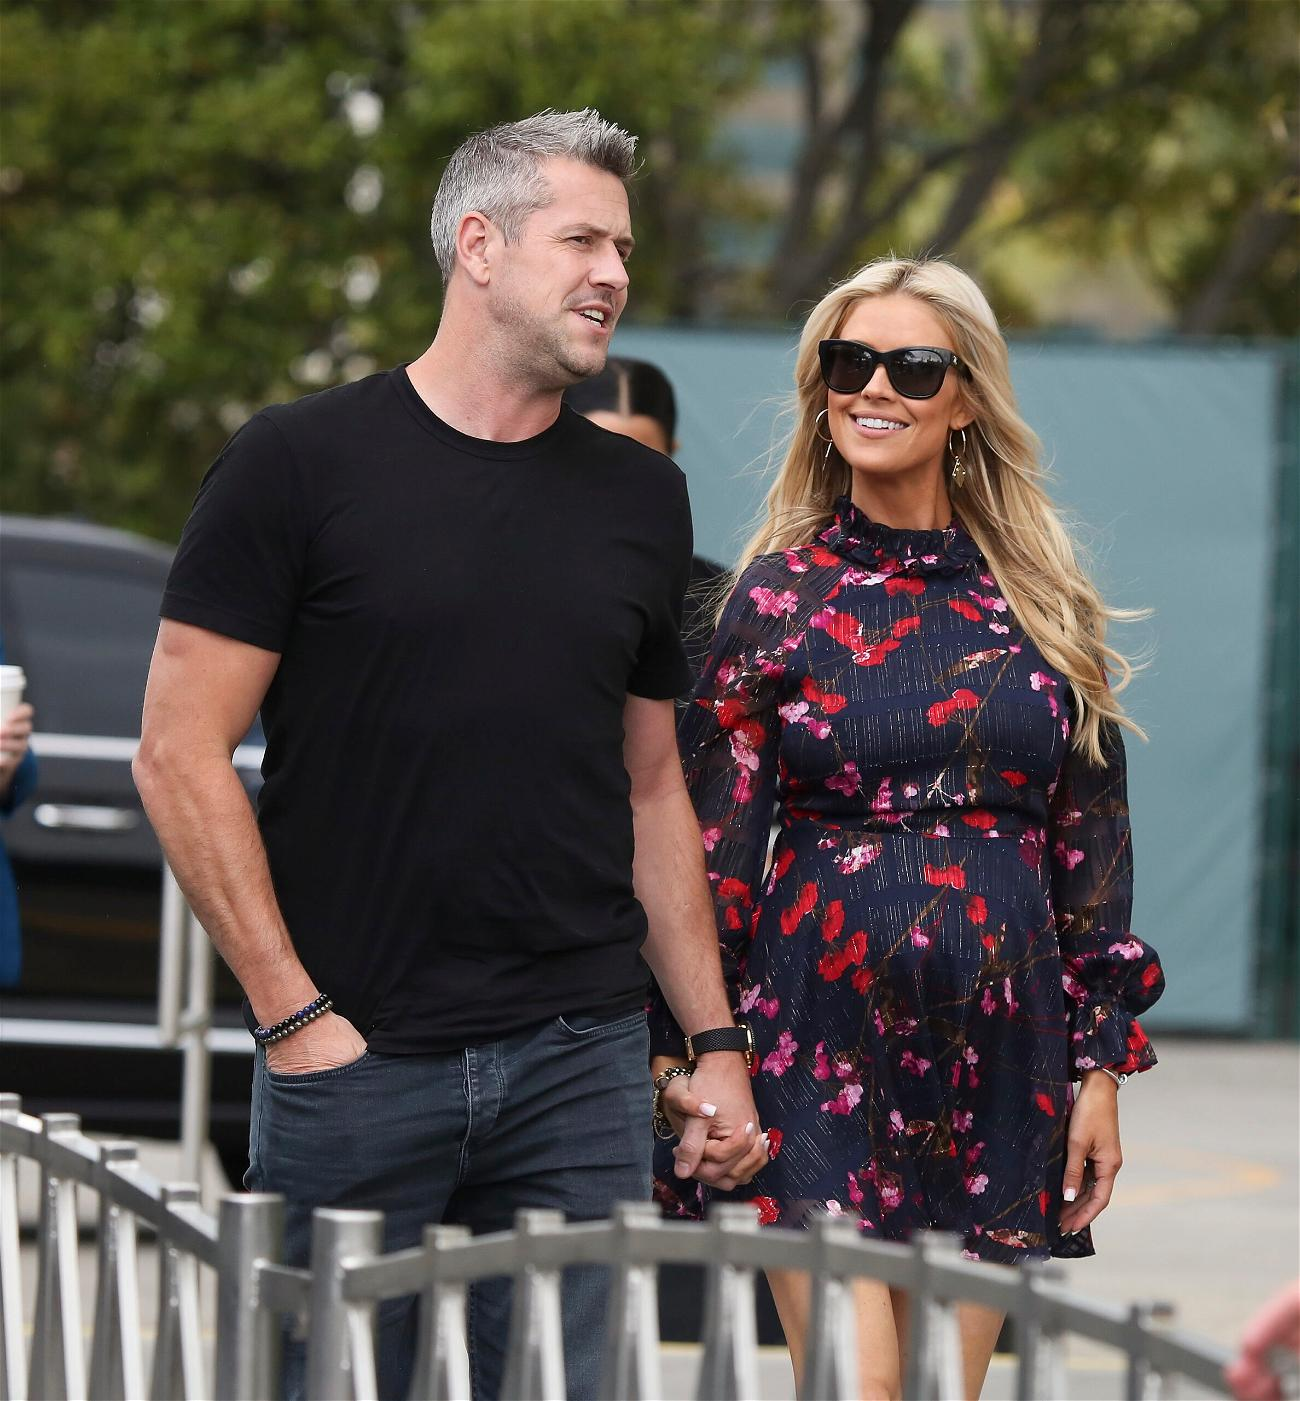 Pregnant Christina Anstead and her husband Ant holding hands